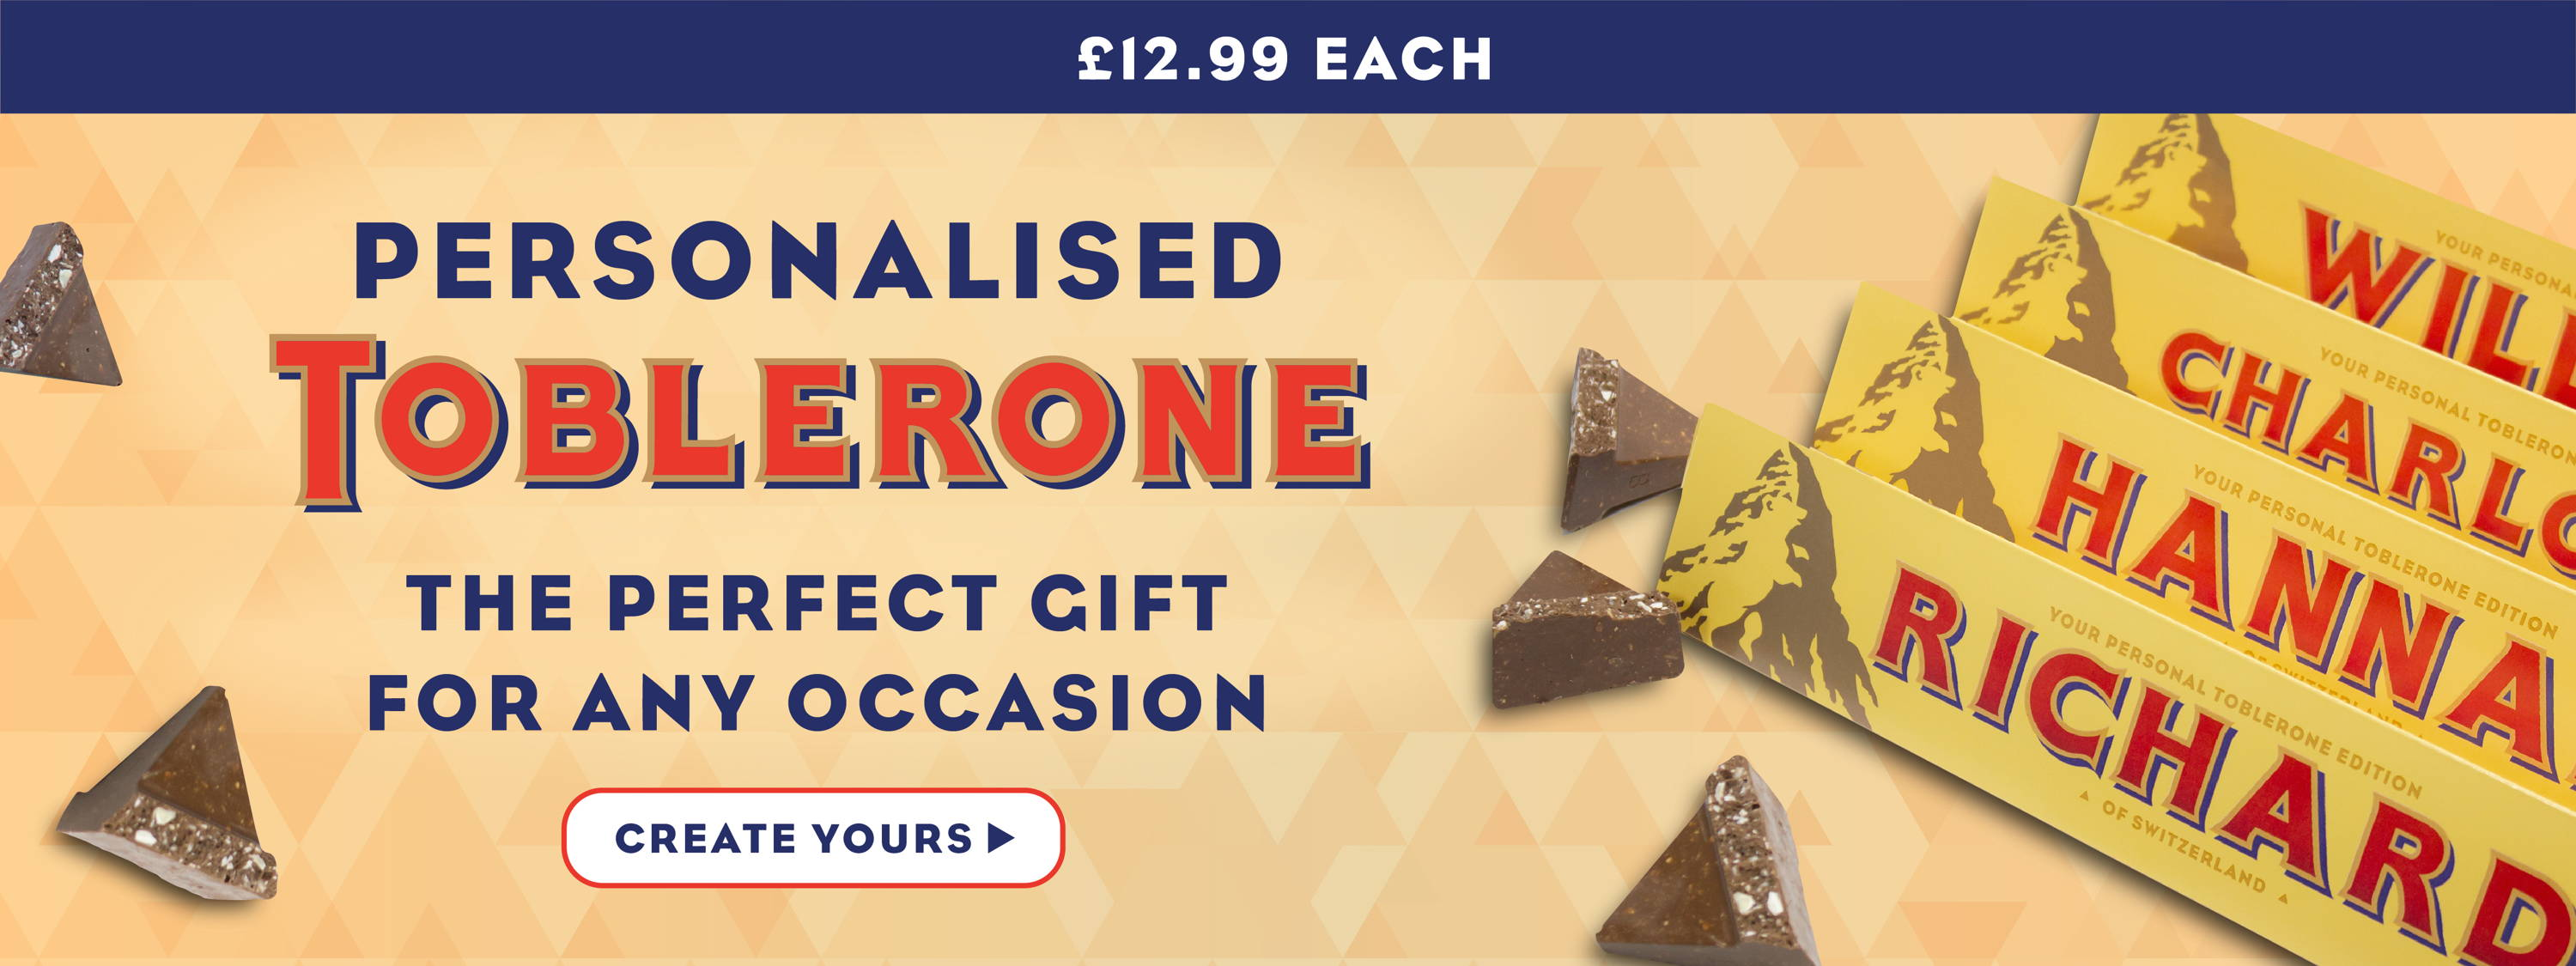 Personalised Toblerone - £12.99 each or 2 for £22